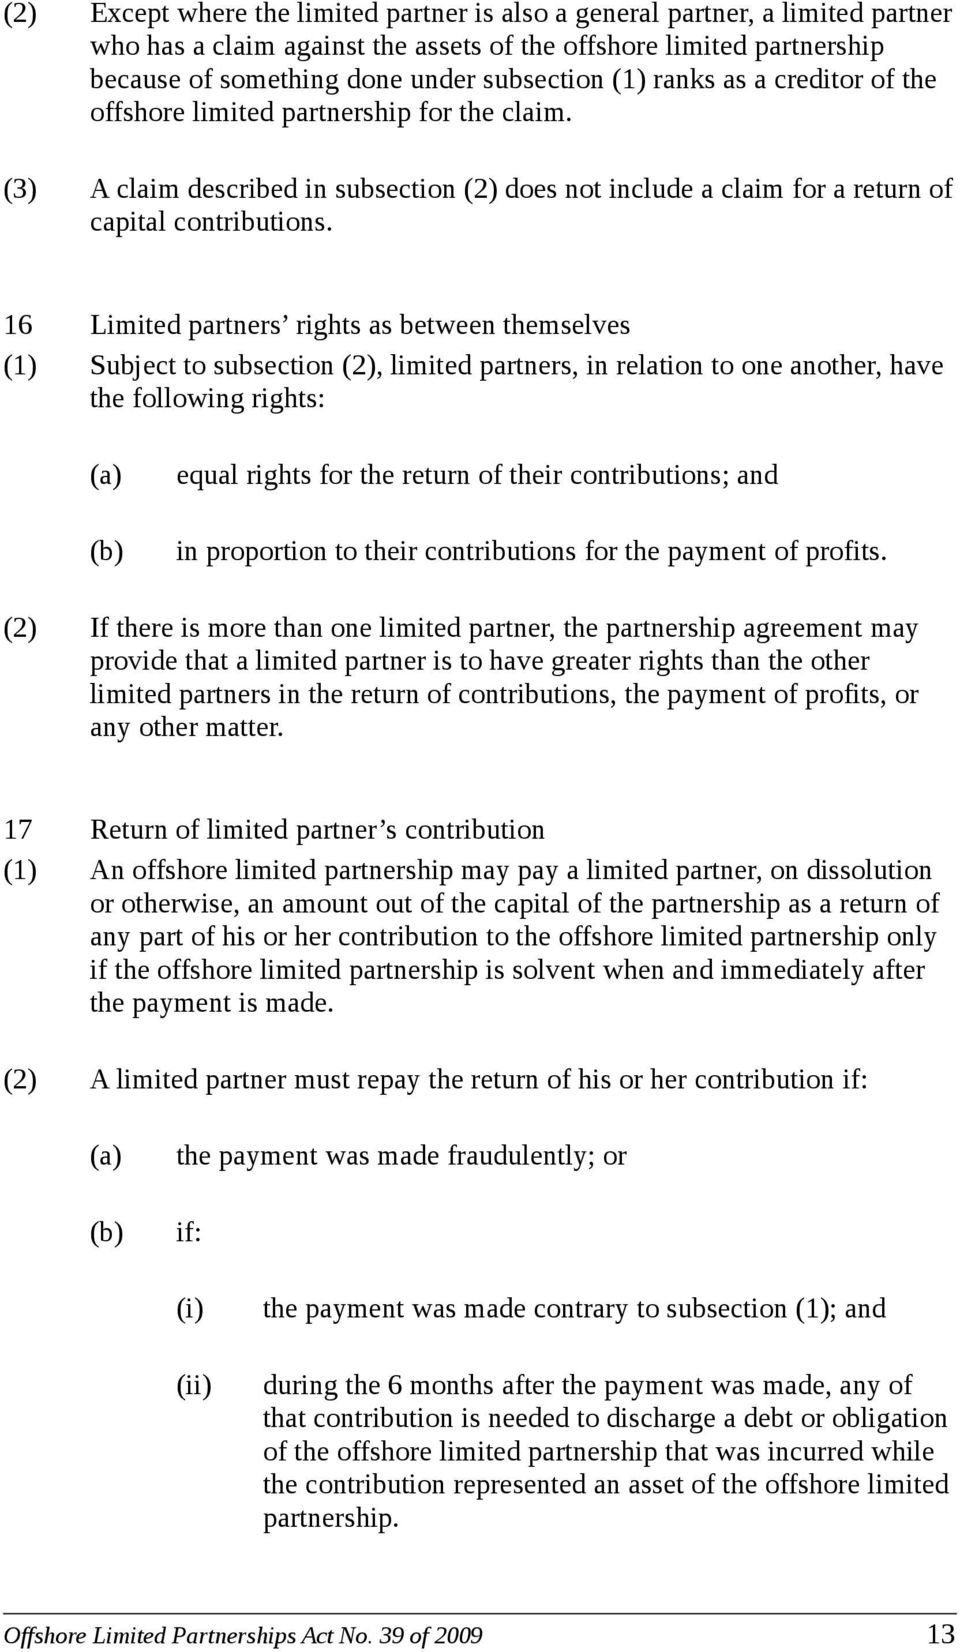 16 Limited partners rights as between themselves (1) Subject to subsection (2), limited partners, in relation to one another, have the following rights: equal rights for the return of their